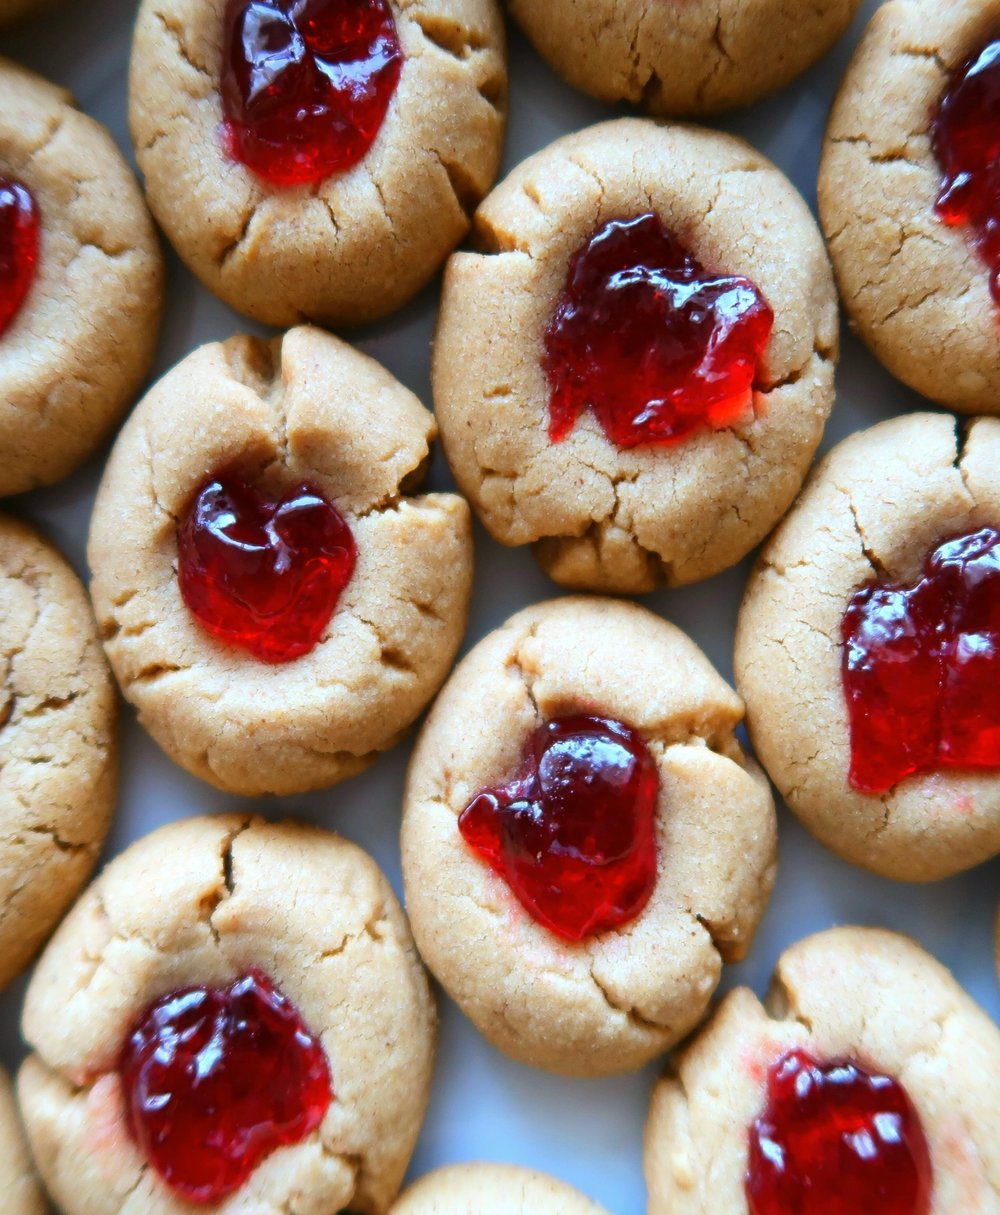 peanut butter thumbprint cookies filled with jelly